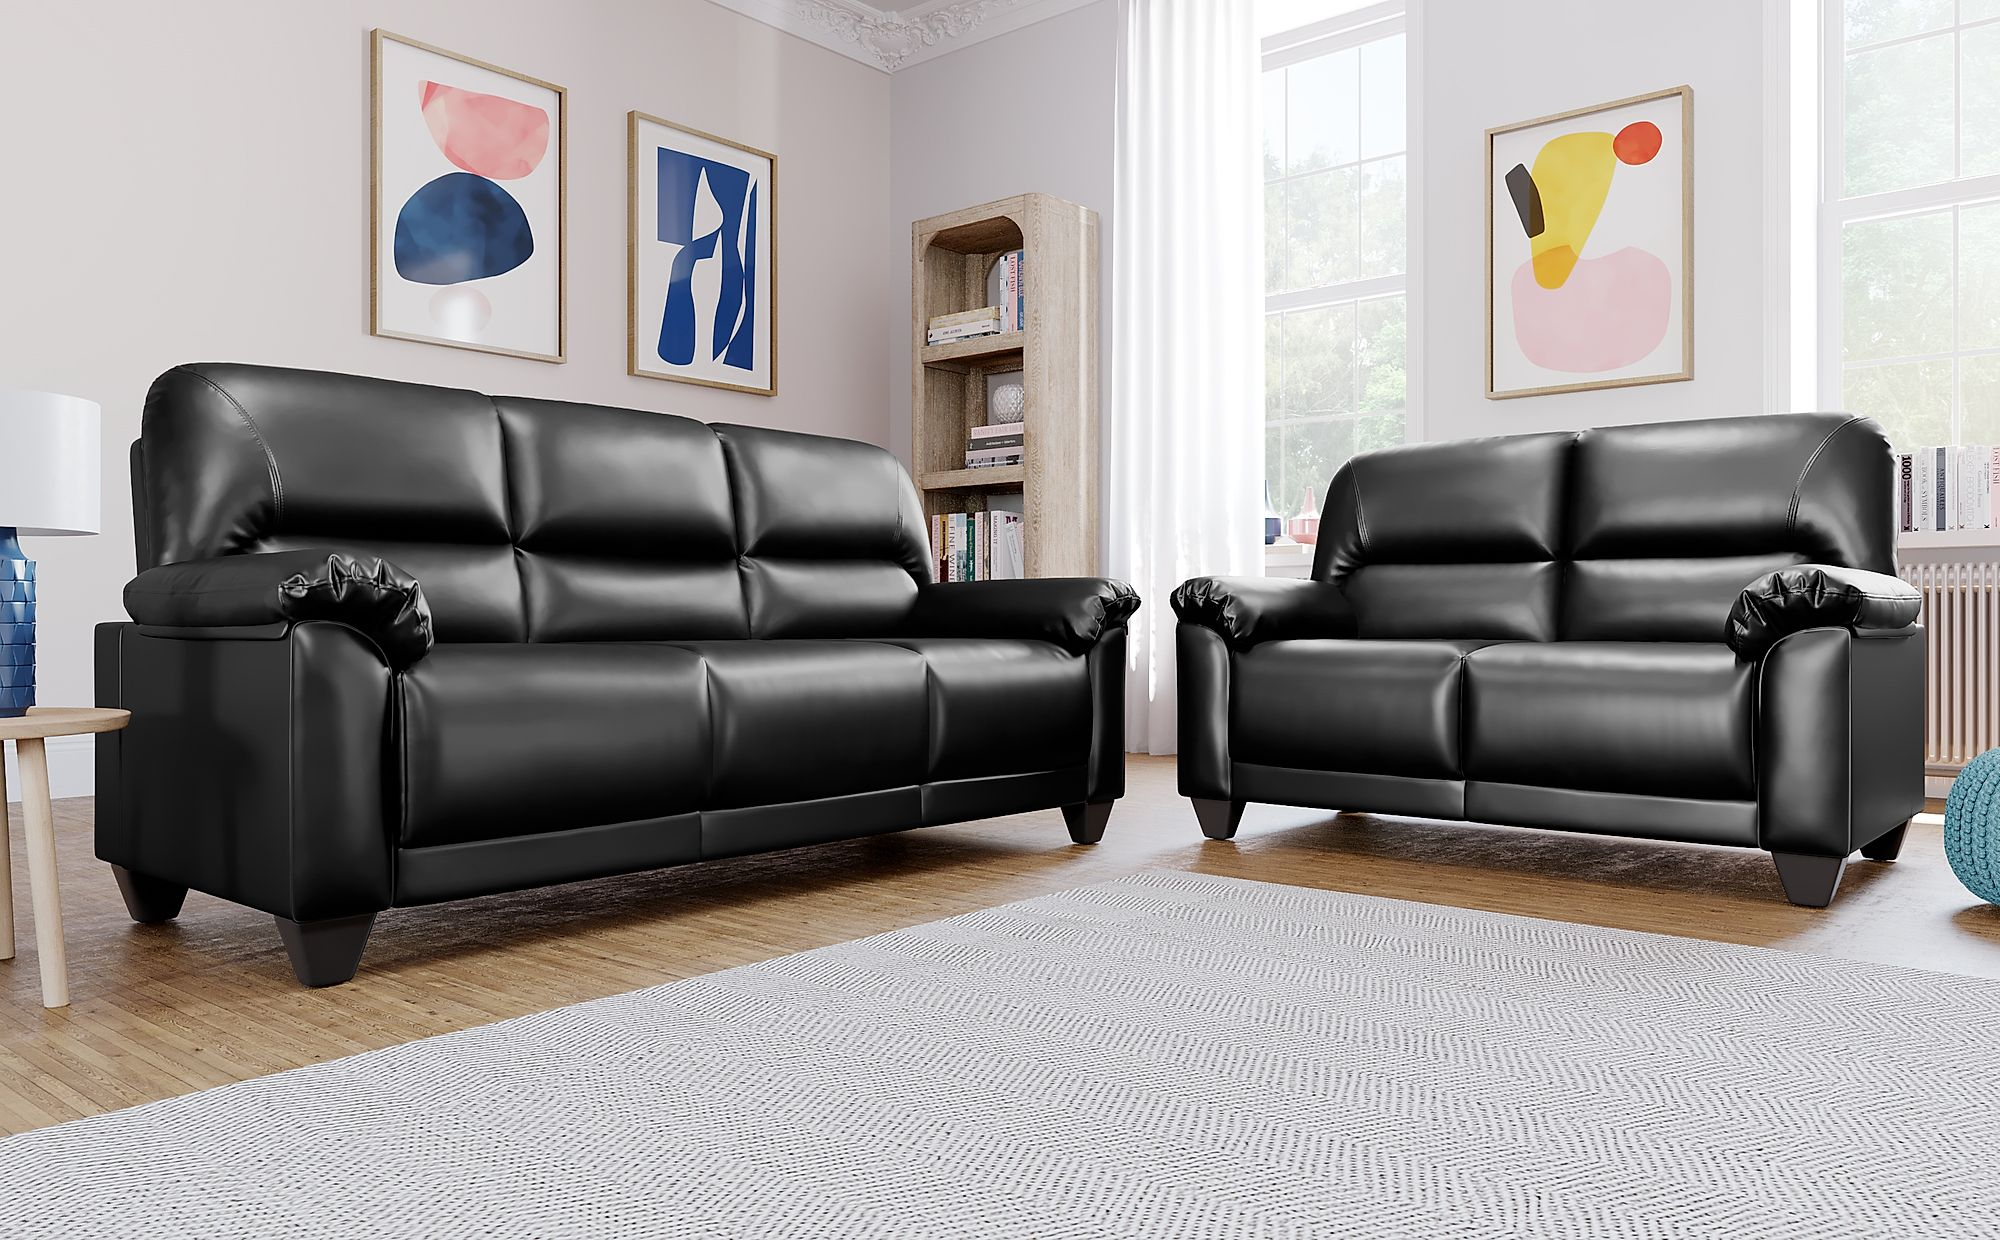 Kenton Small Black Leather Sofa 3 2 Seater Only 163 499 98 Furniture Choice